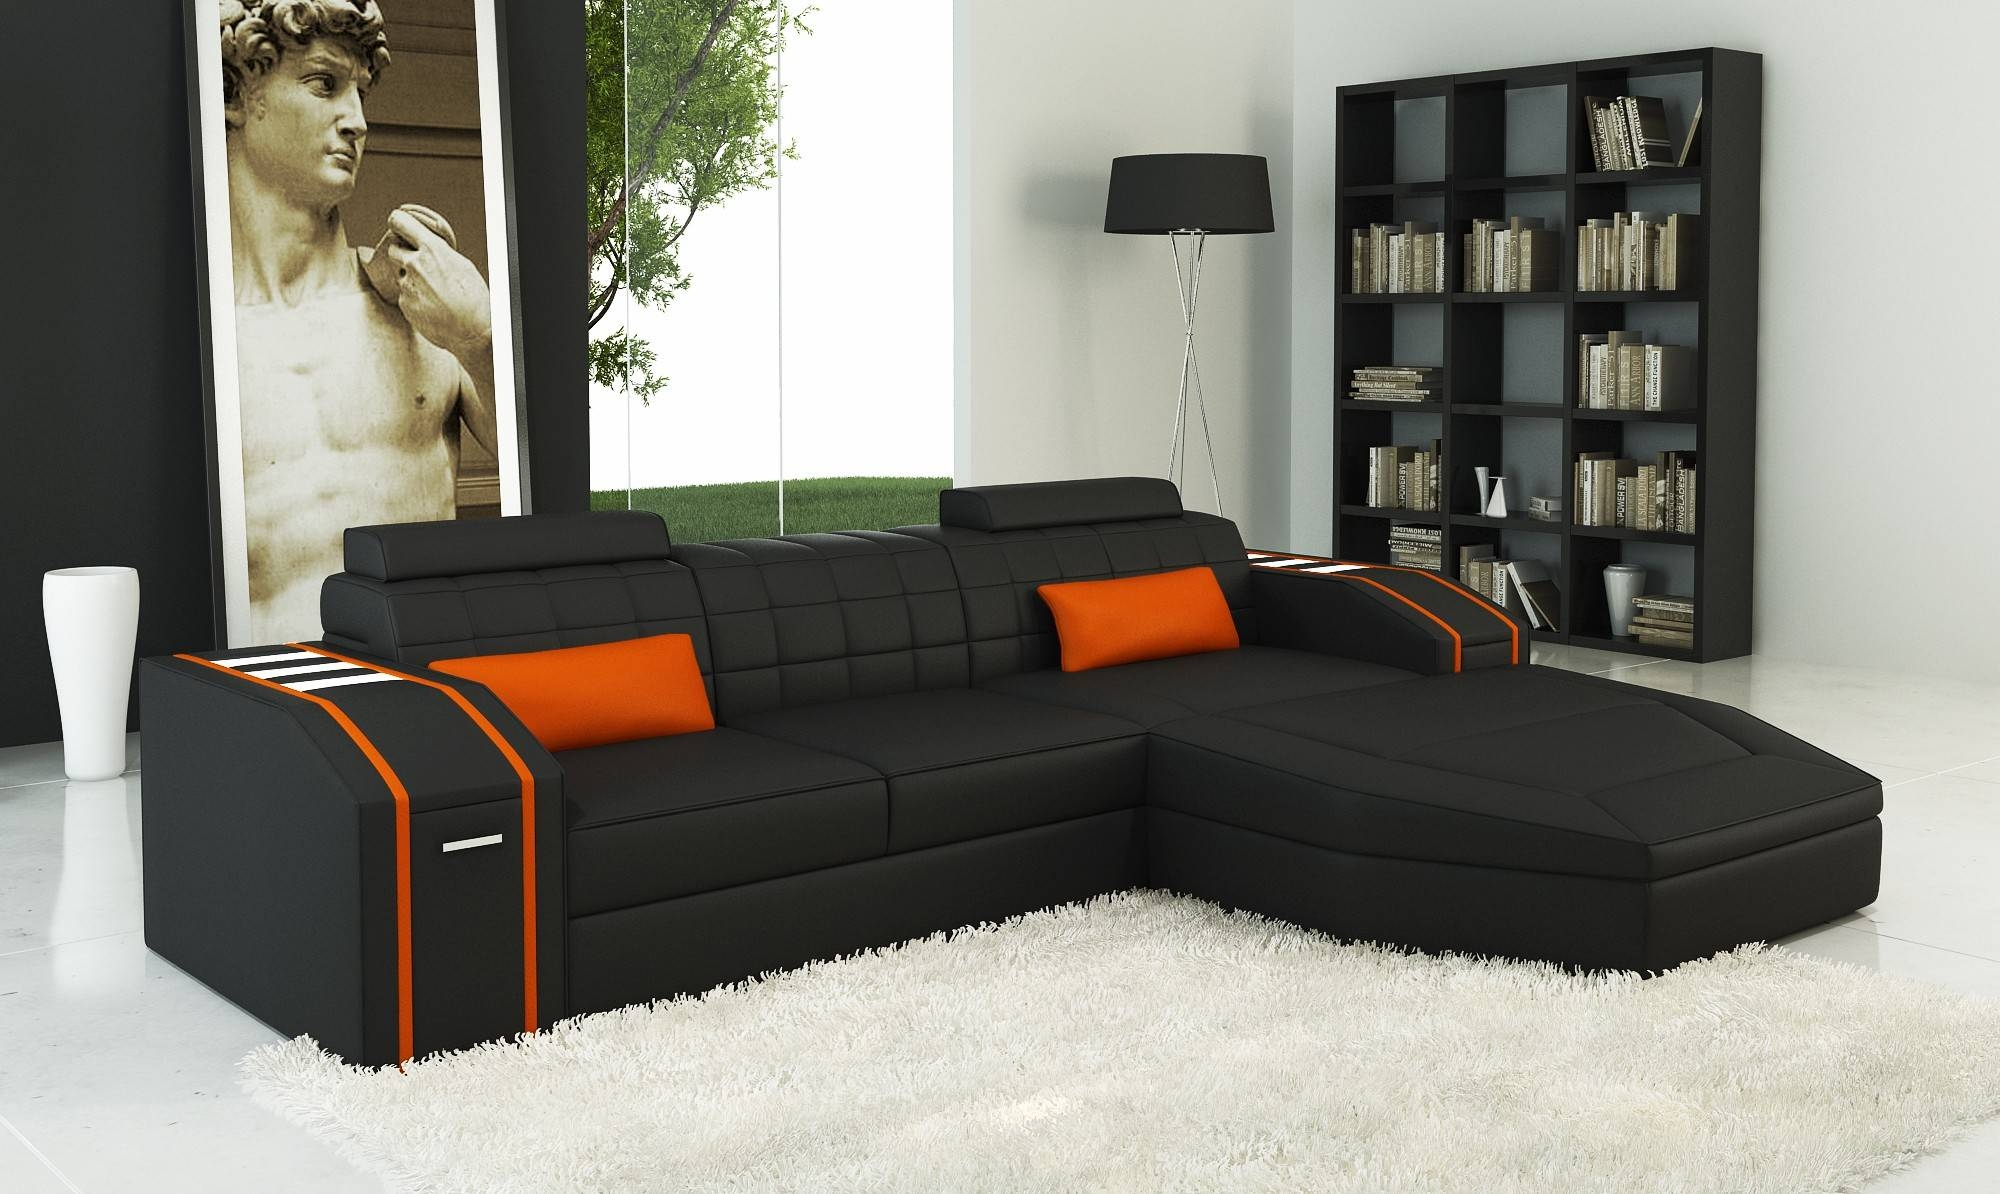 Sofa: Cool Couches For Provides A Warm To Comfortable Feel And Low for Cool Cheap Sofas (Image 27 of 30)